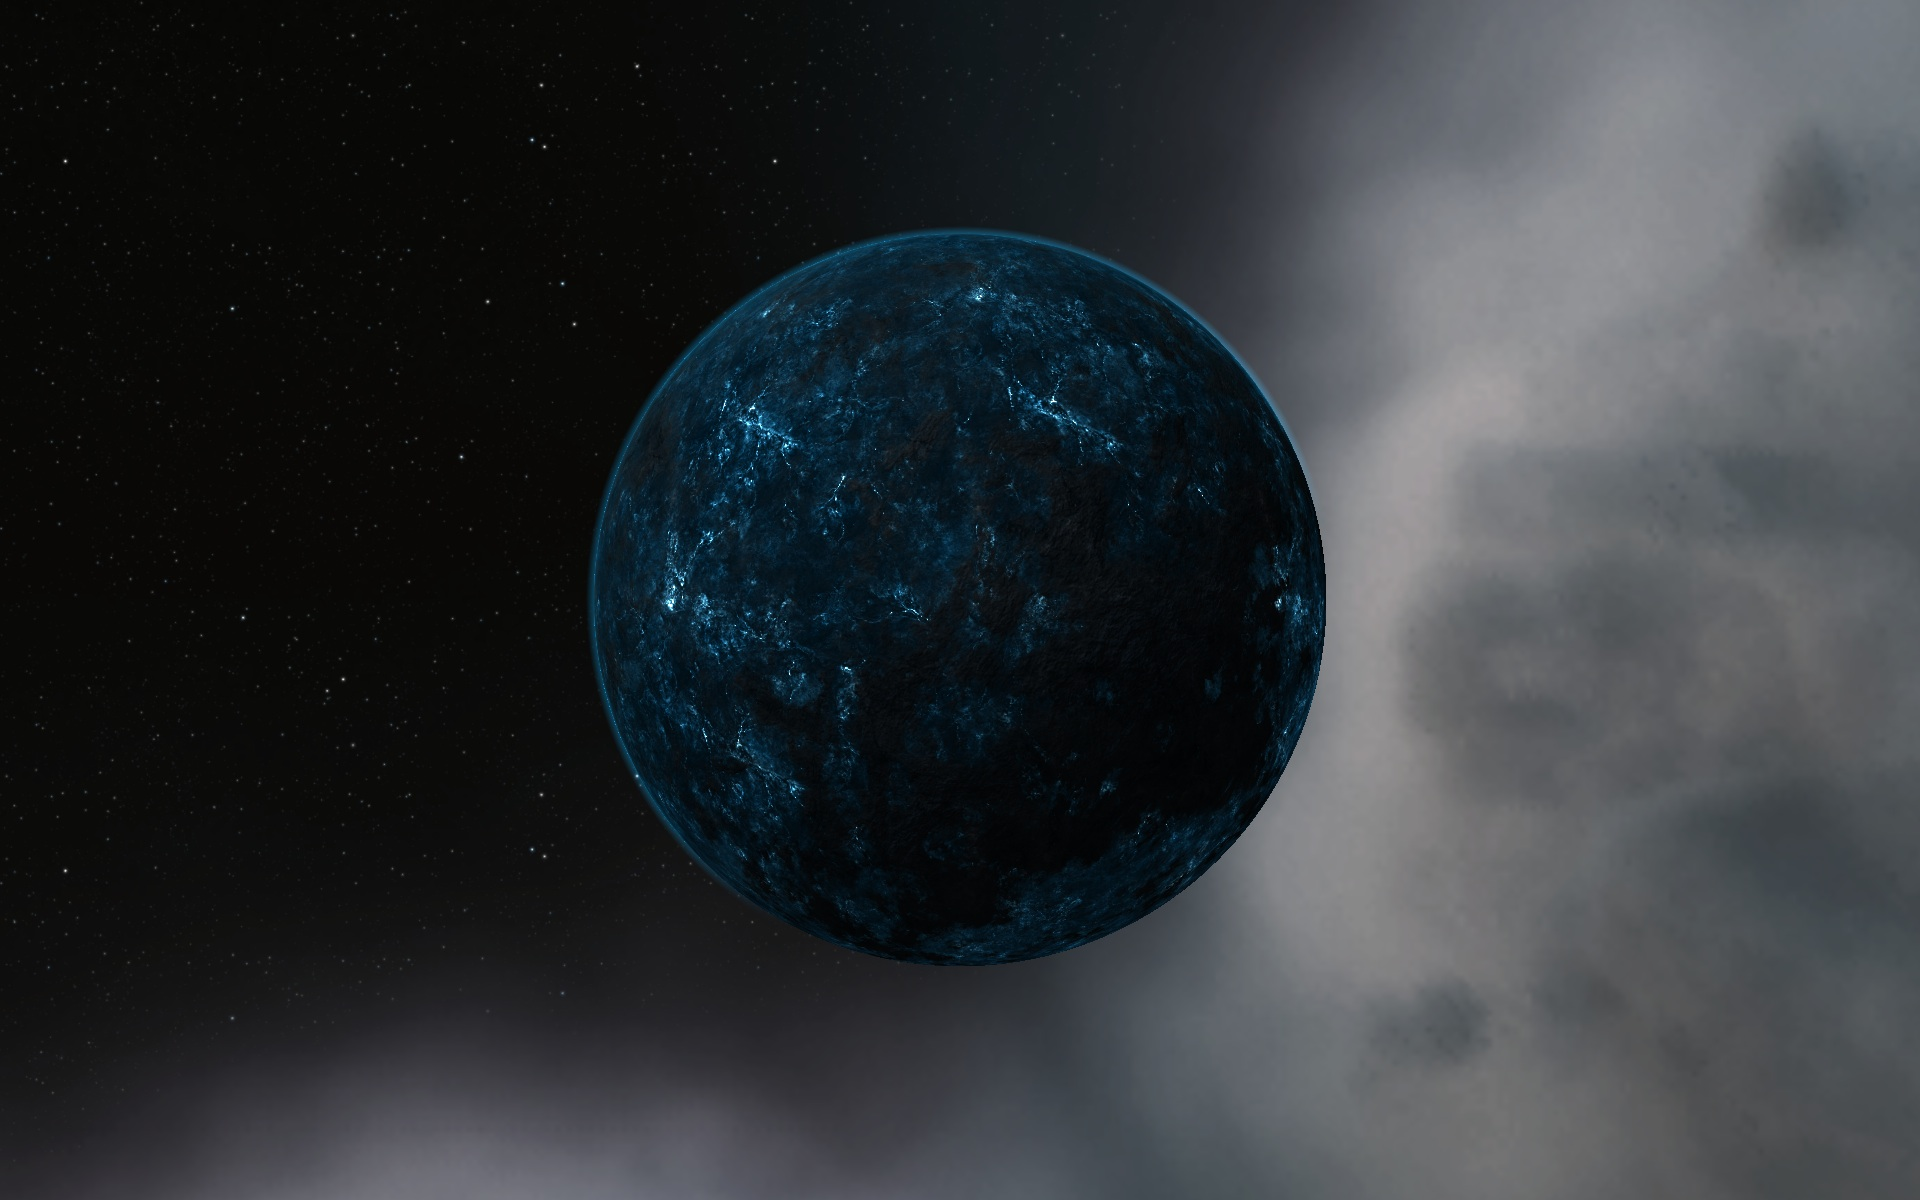 planetary interaction setting up on a plasma planet. Black Bedroom Furniture Sets. Home Design Ideas